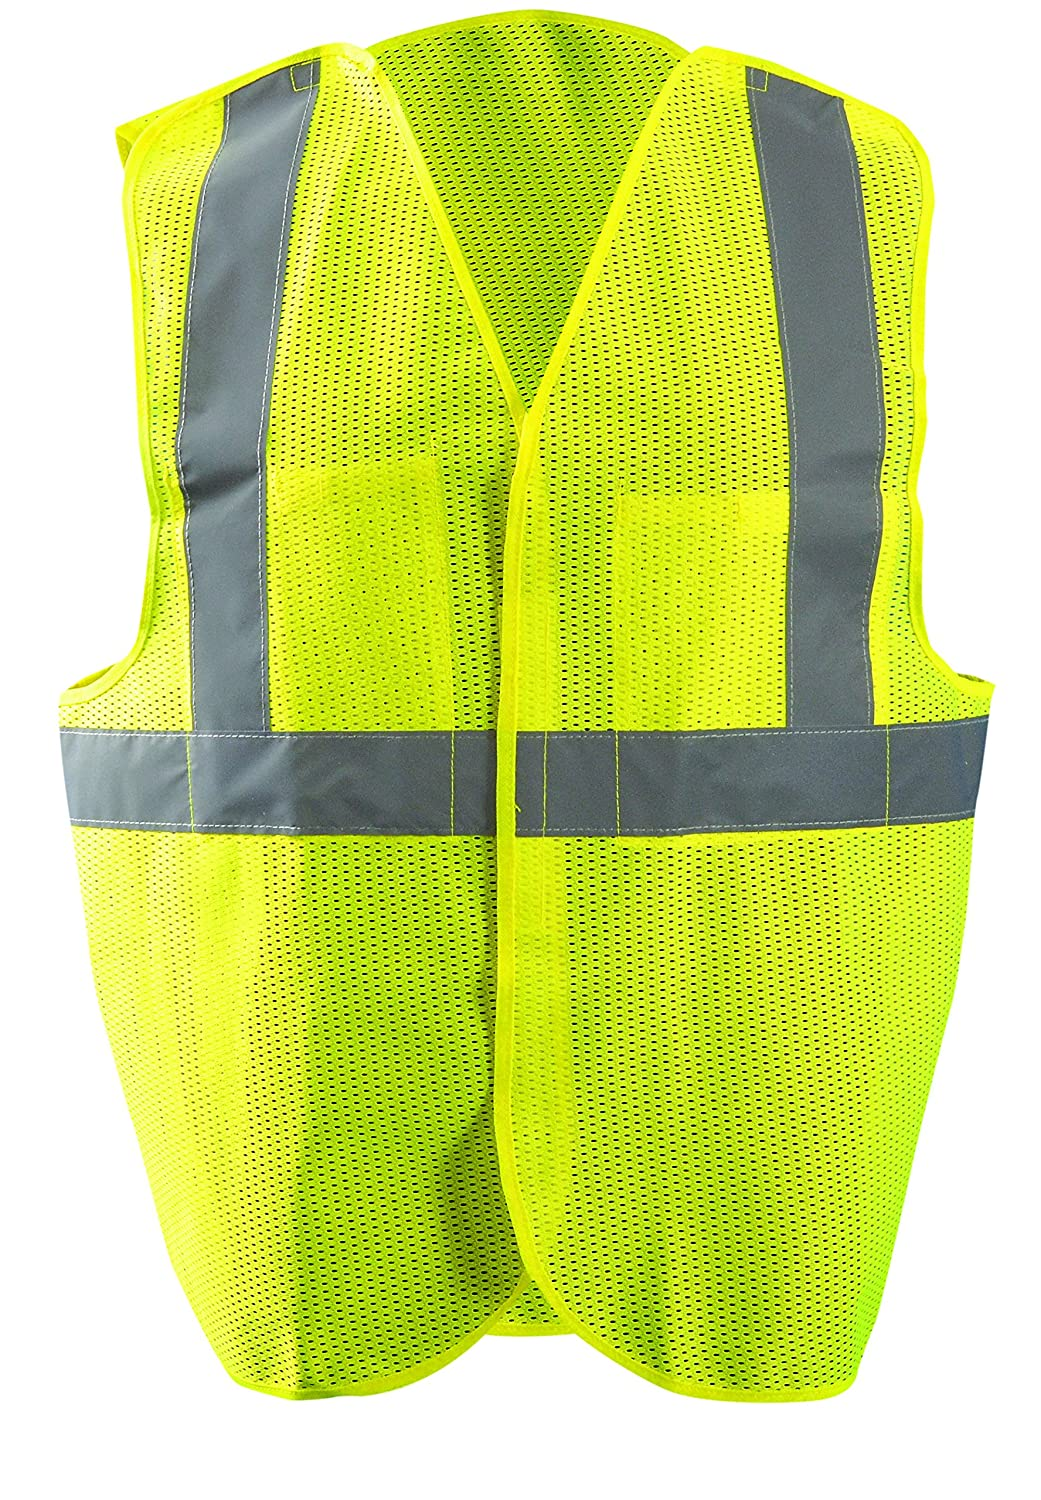 Large//X-Large Occunomix LUX-SSGCB-OL//XL Classic Mesh 5 Point Break-Away Safety Vests Orange